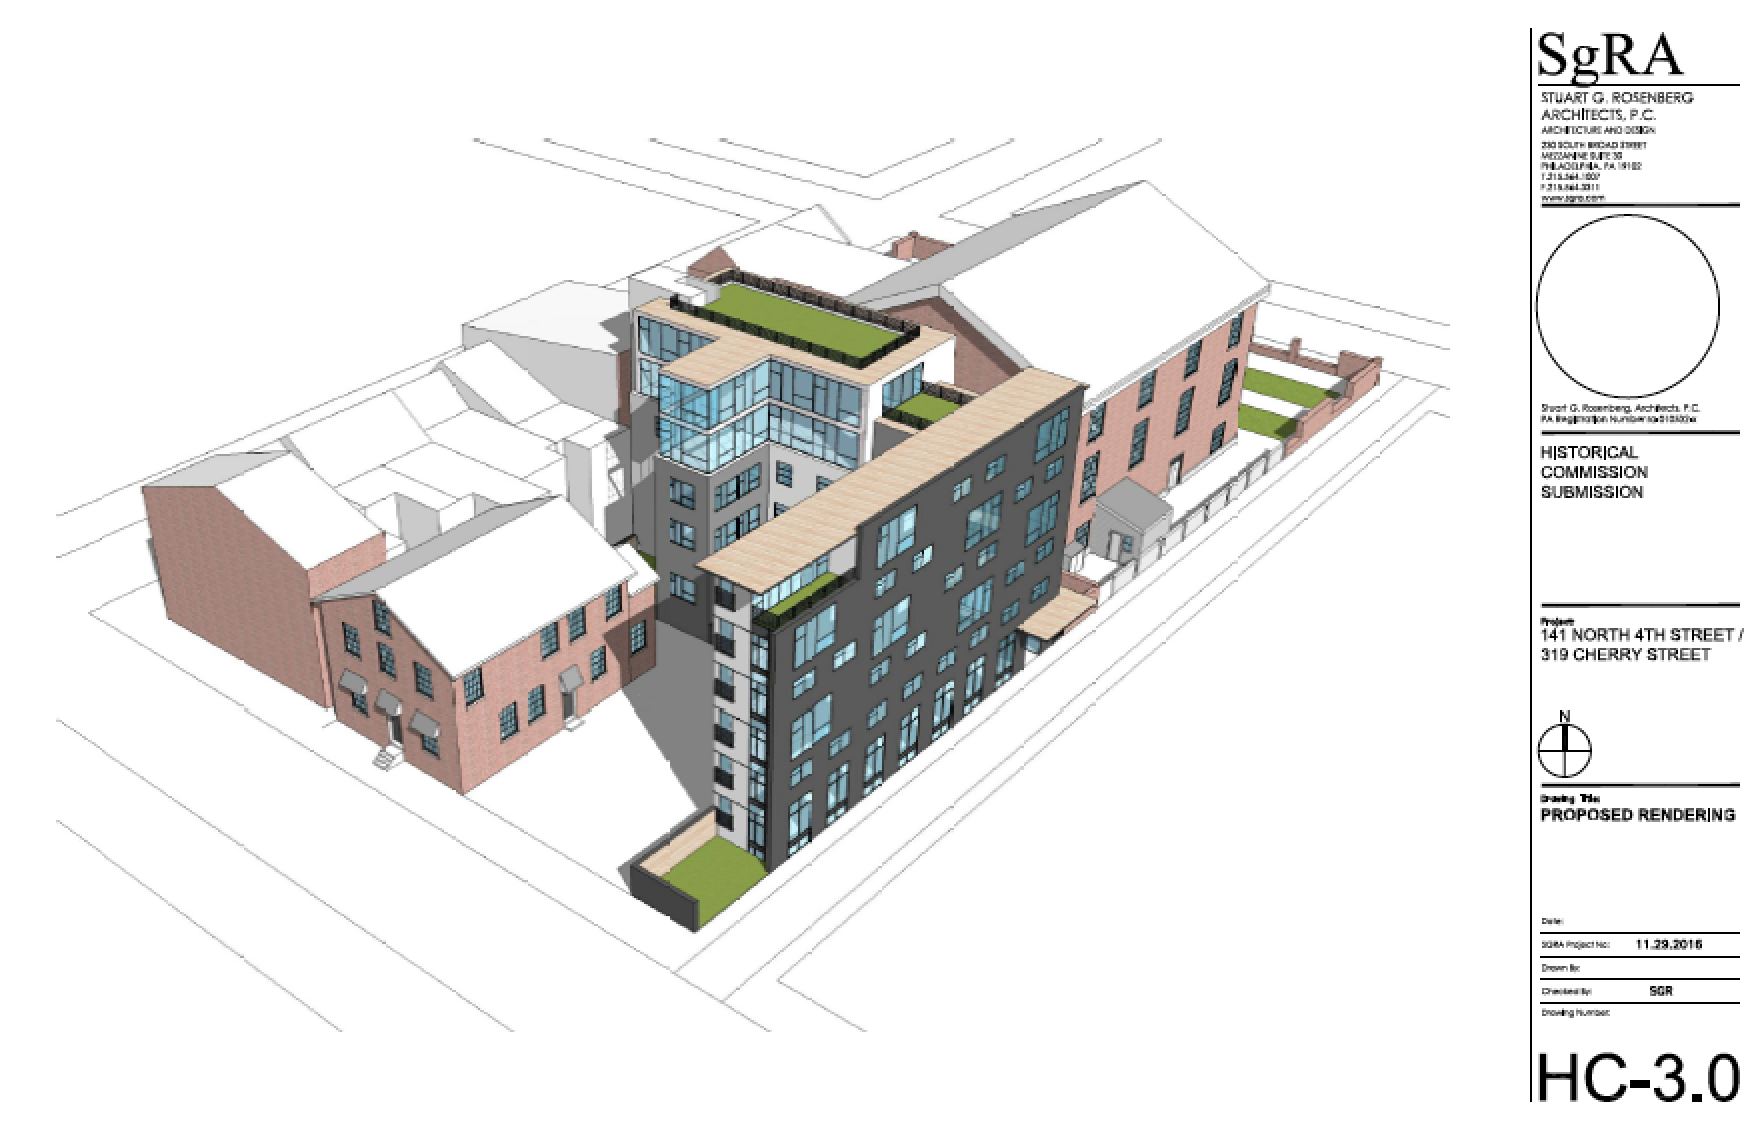 Proposal for 141 N. 4th / 319 Cherry, December 2016 Architectural Committee hearing | SgRA